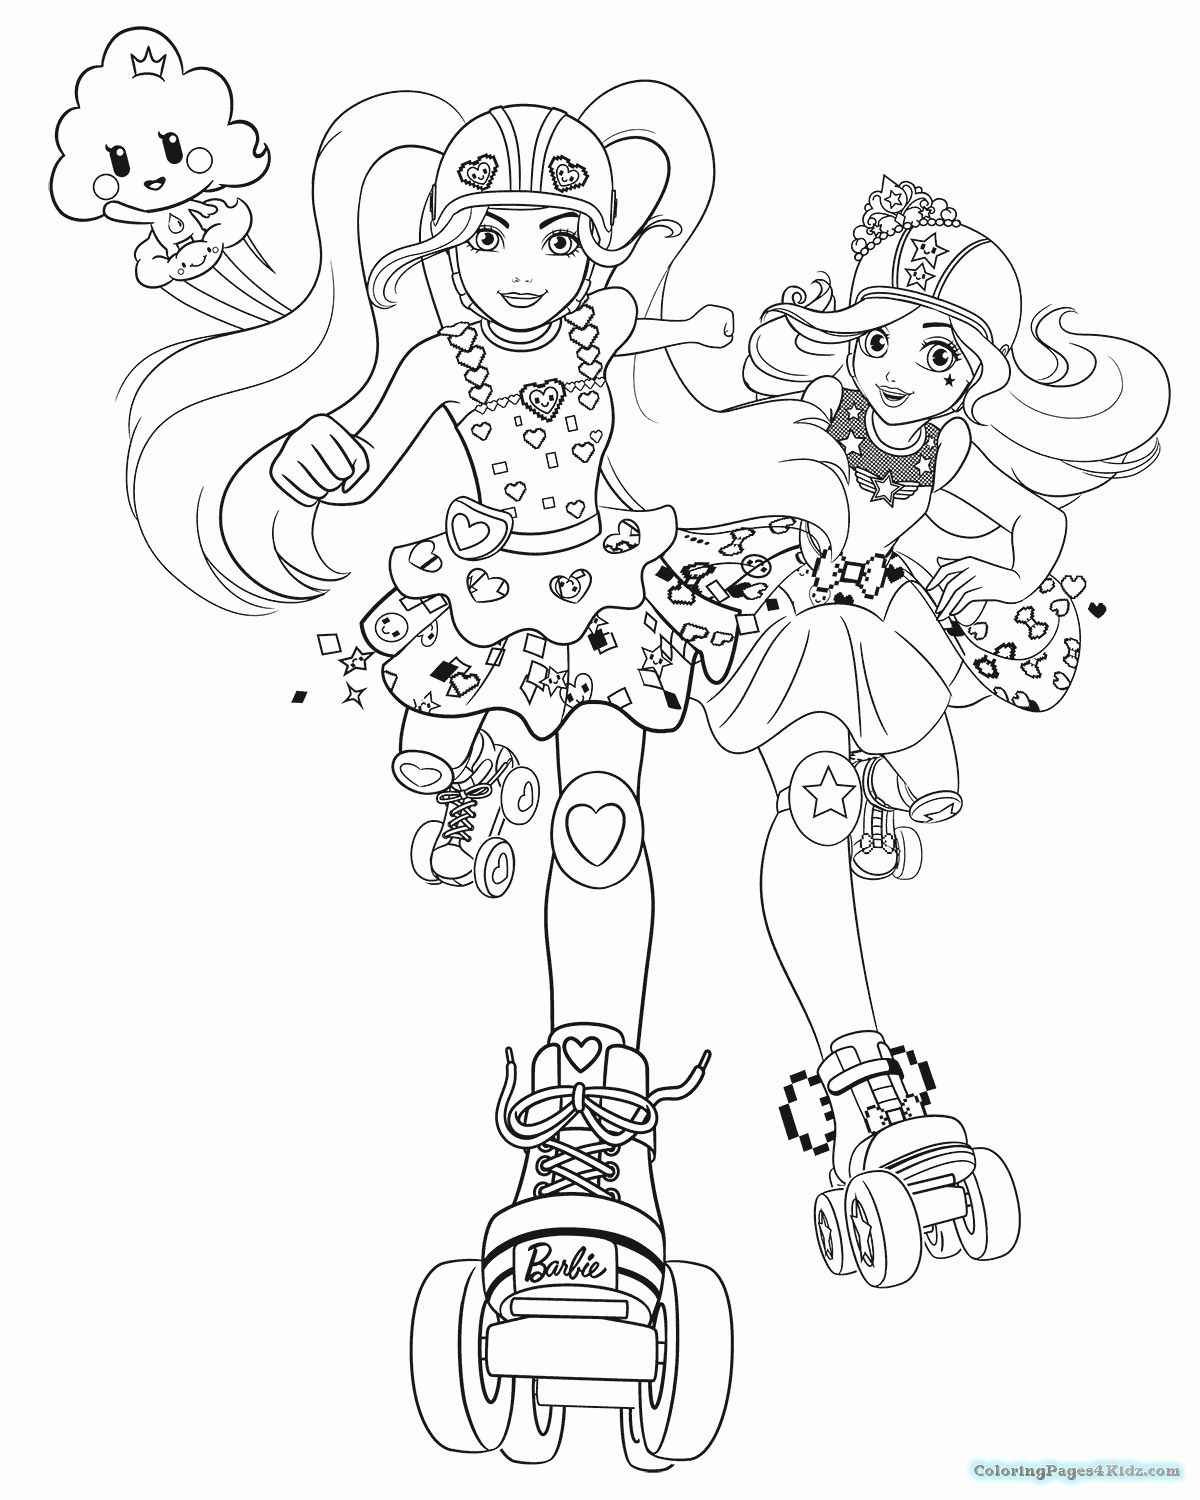 Video Game Coloring Pages Fresh Barbie Video Game Hero Coloring Pages Mermaid Coloring Pages Barbie Coloring Pages Coloring Pages